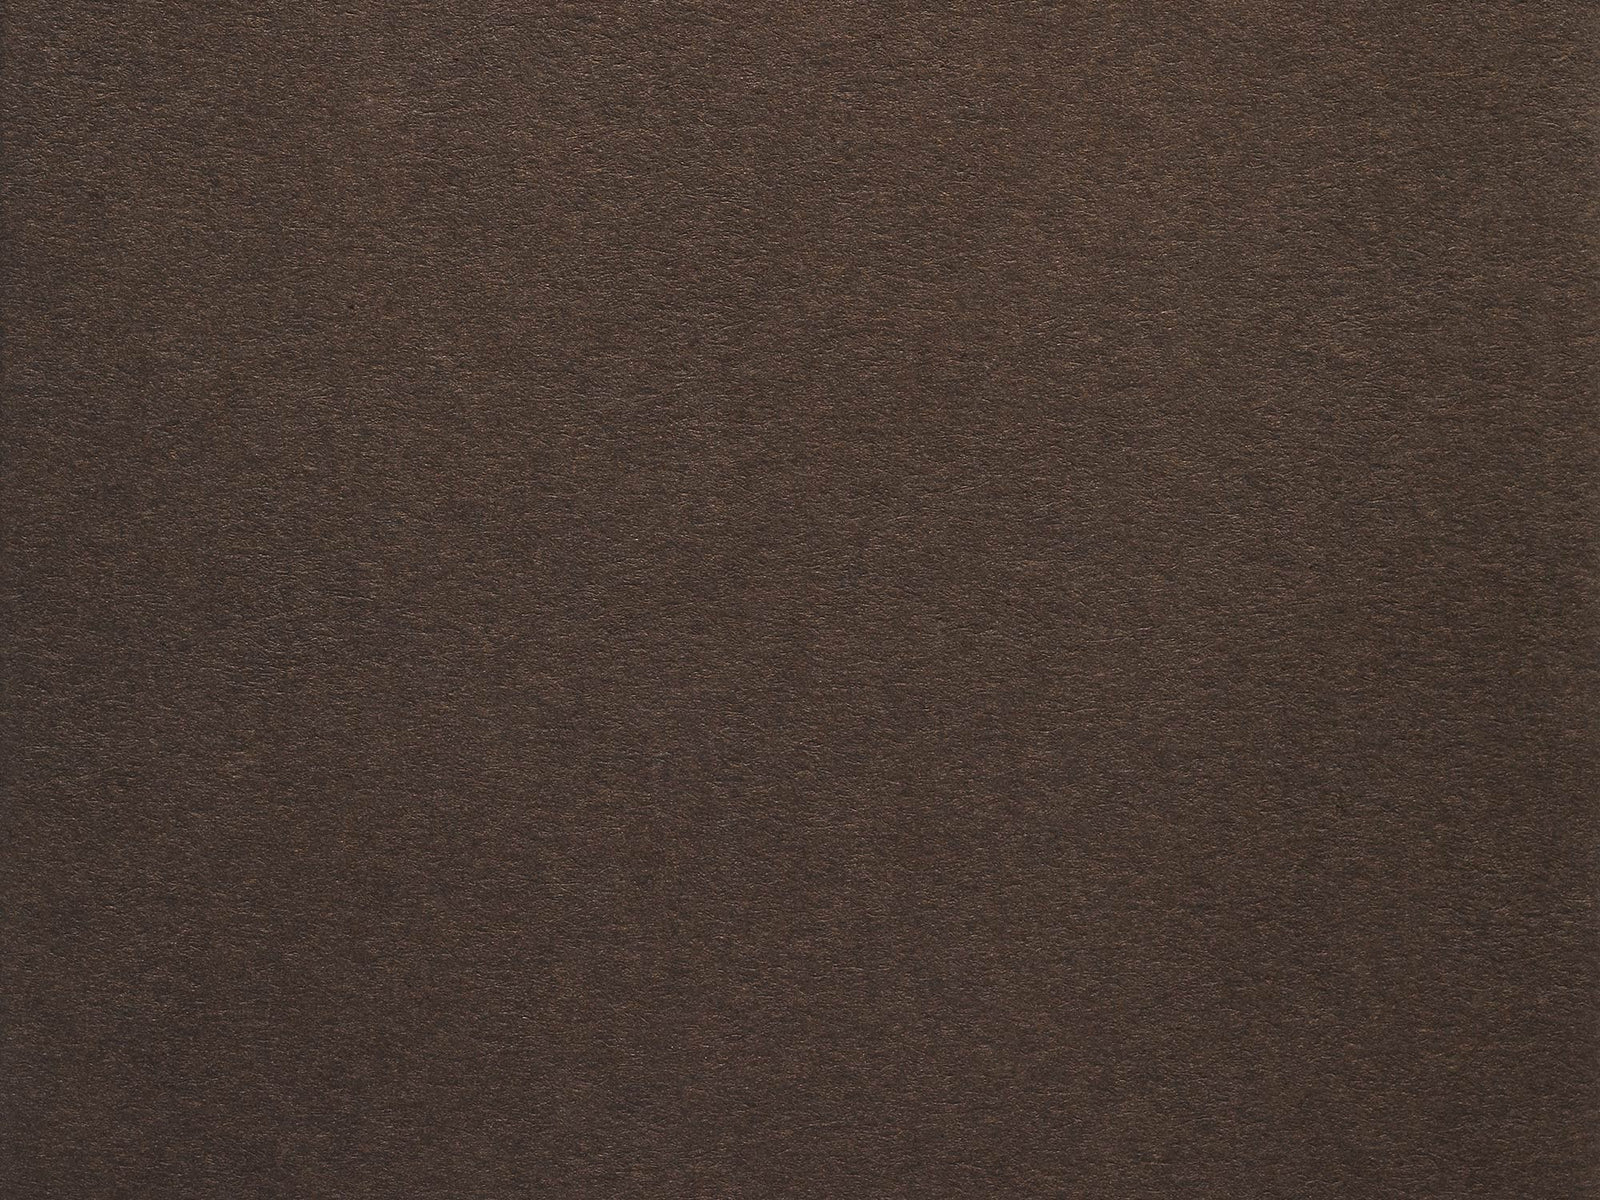 GF Smith Paper Colorplan Azure Bagdad Brown Card